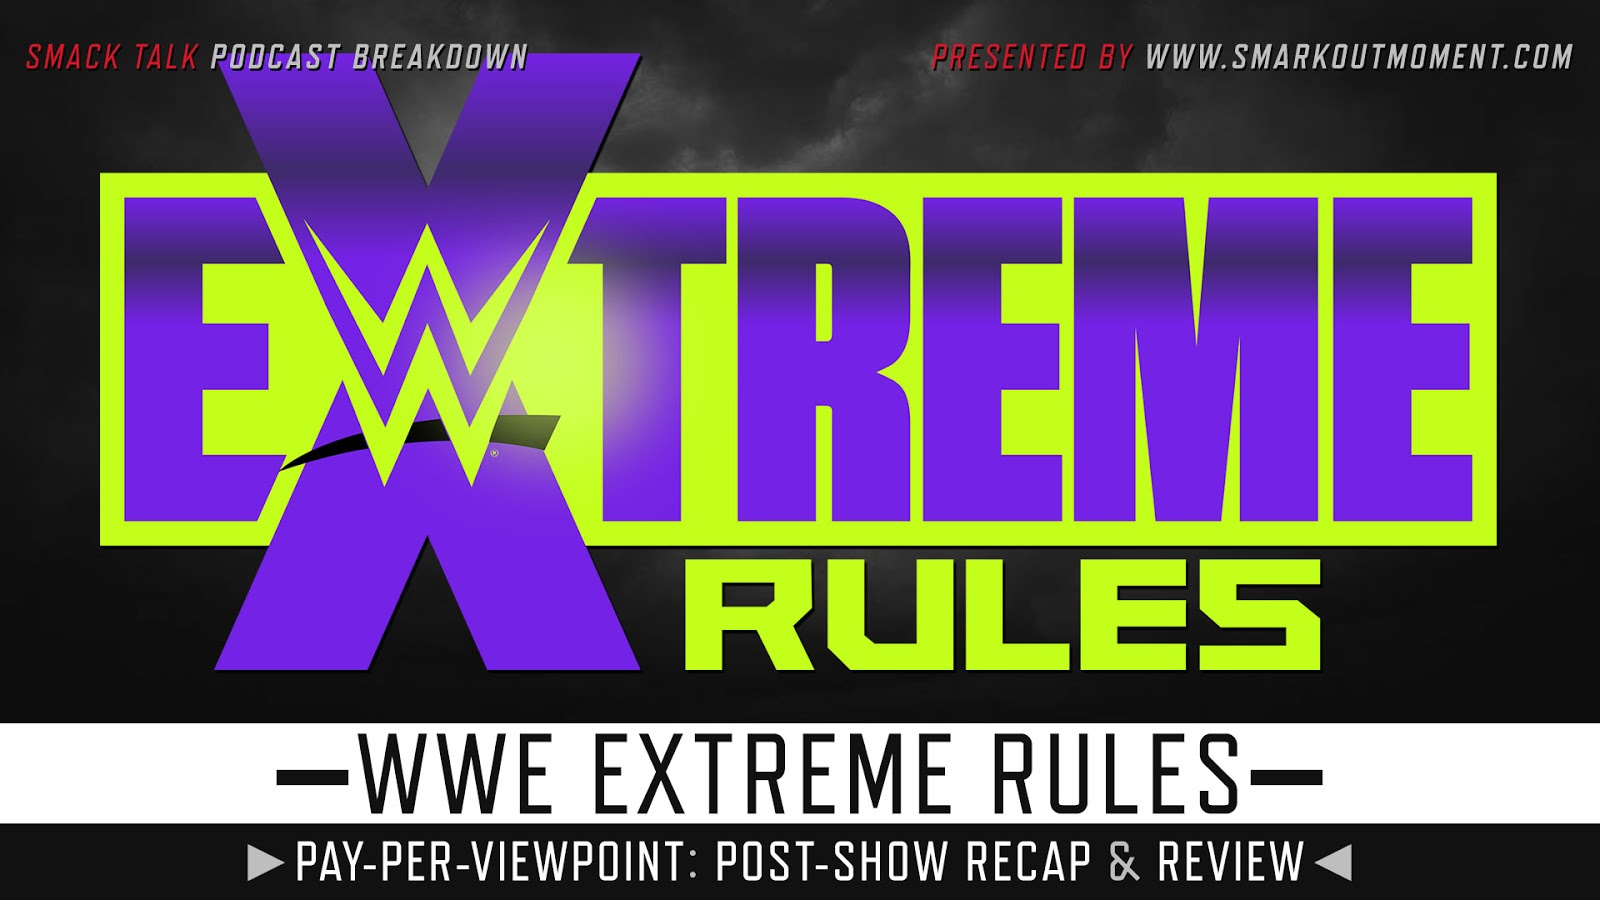 WWE Extreme Rules 2020 Recap and Review Podcast